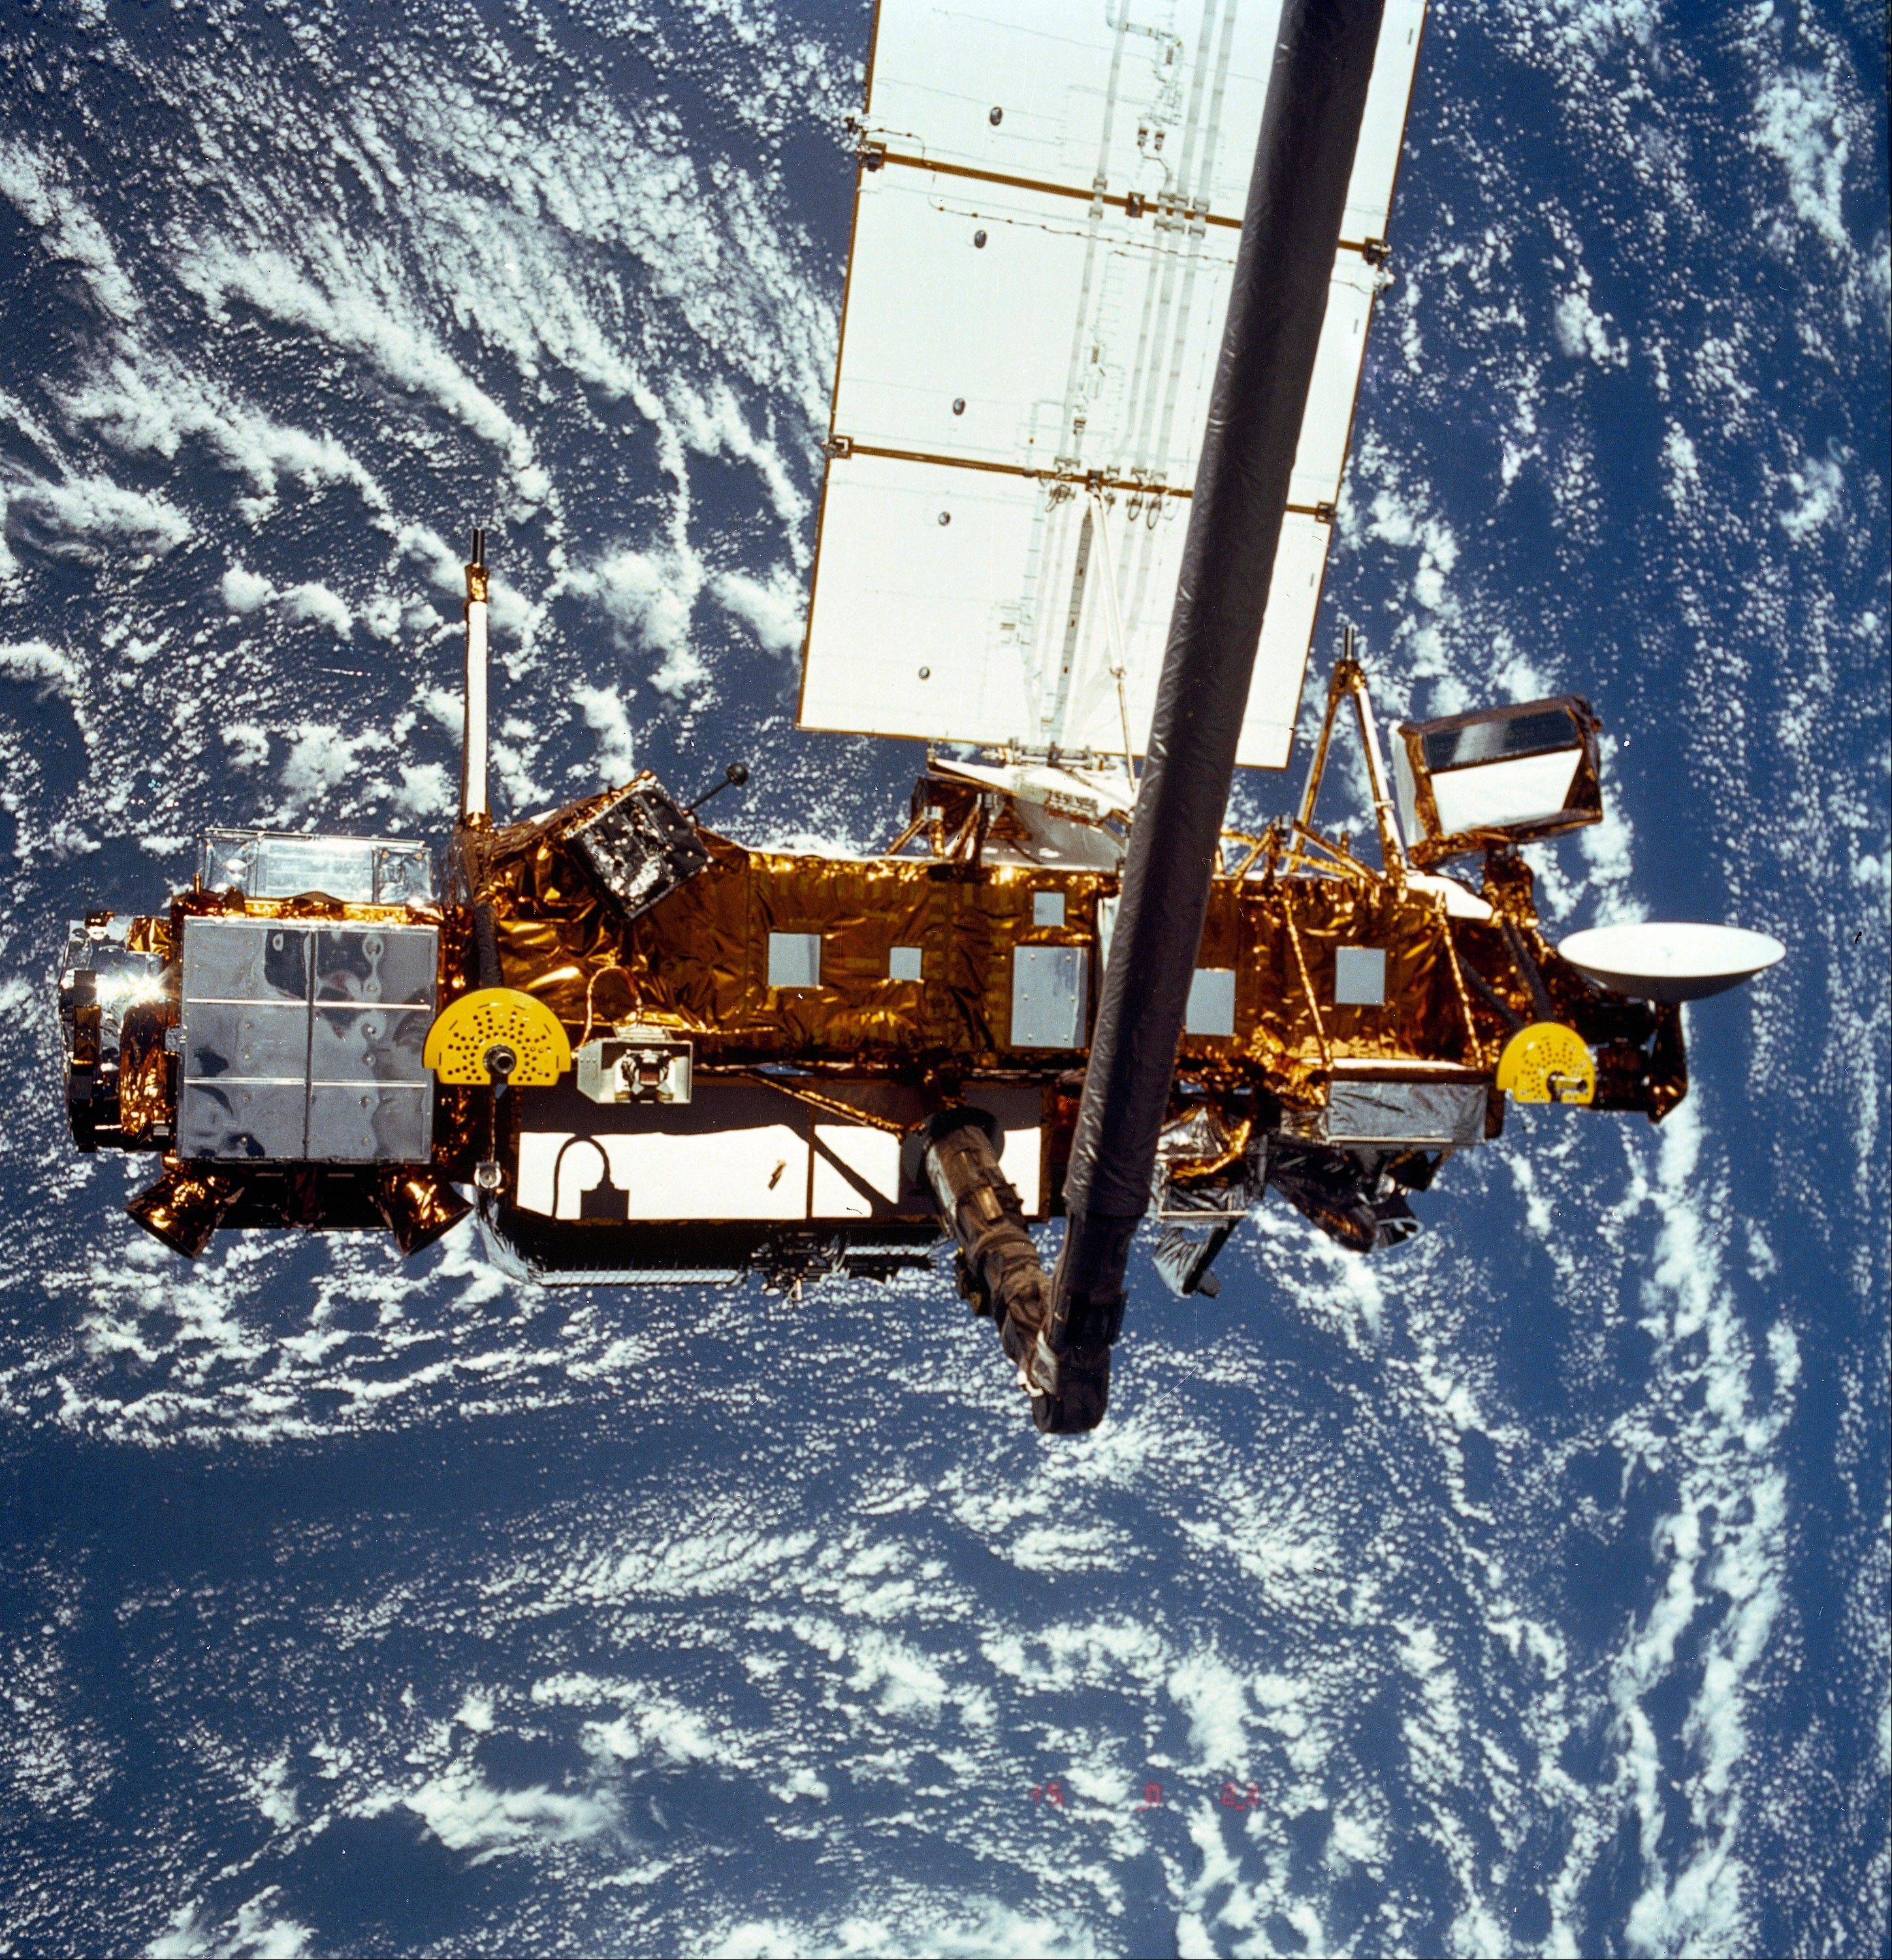 This is the STS-48 Upper Atmosphere Research Satellite during deployment from the shuttle in September 1991.